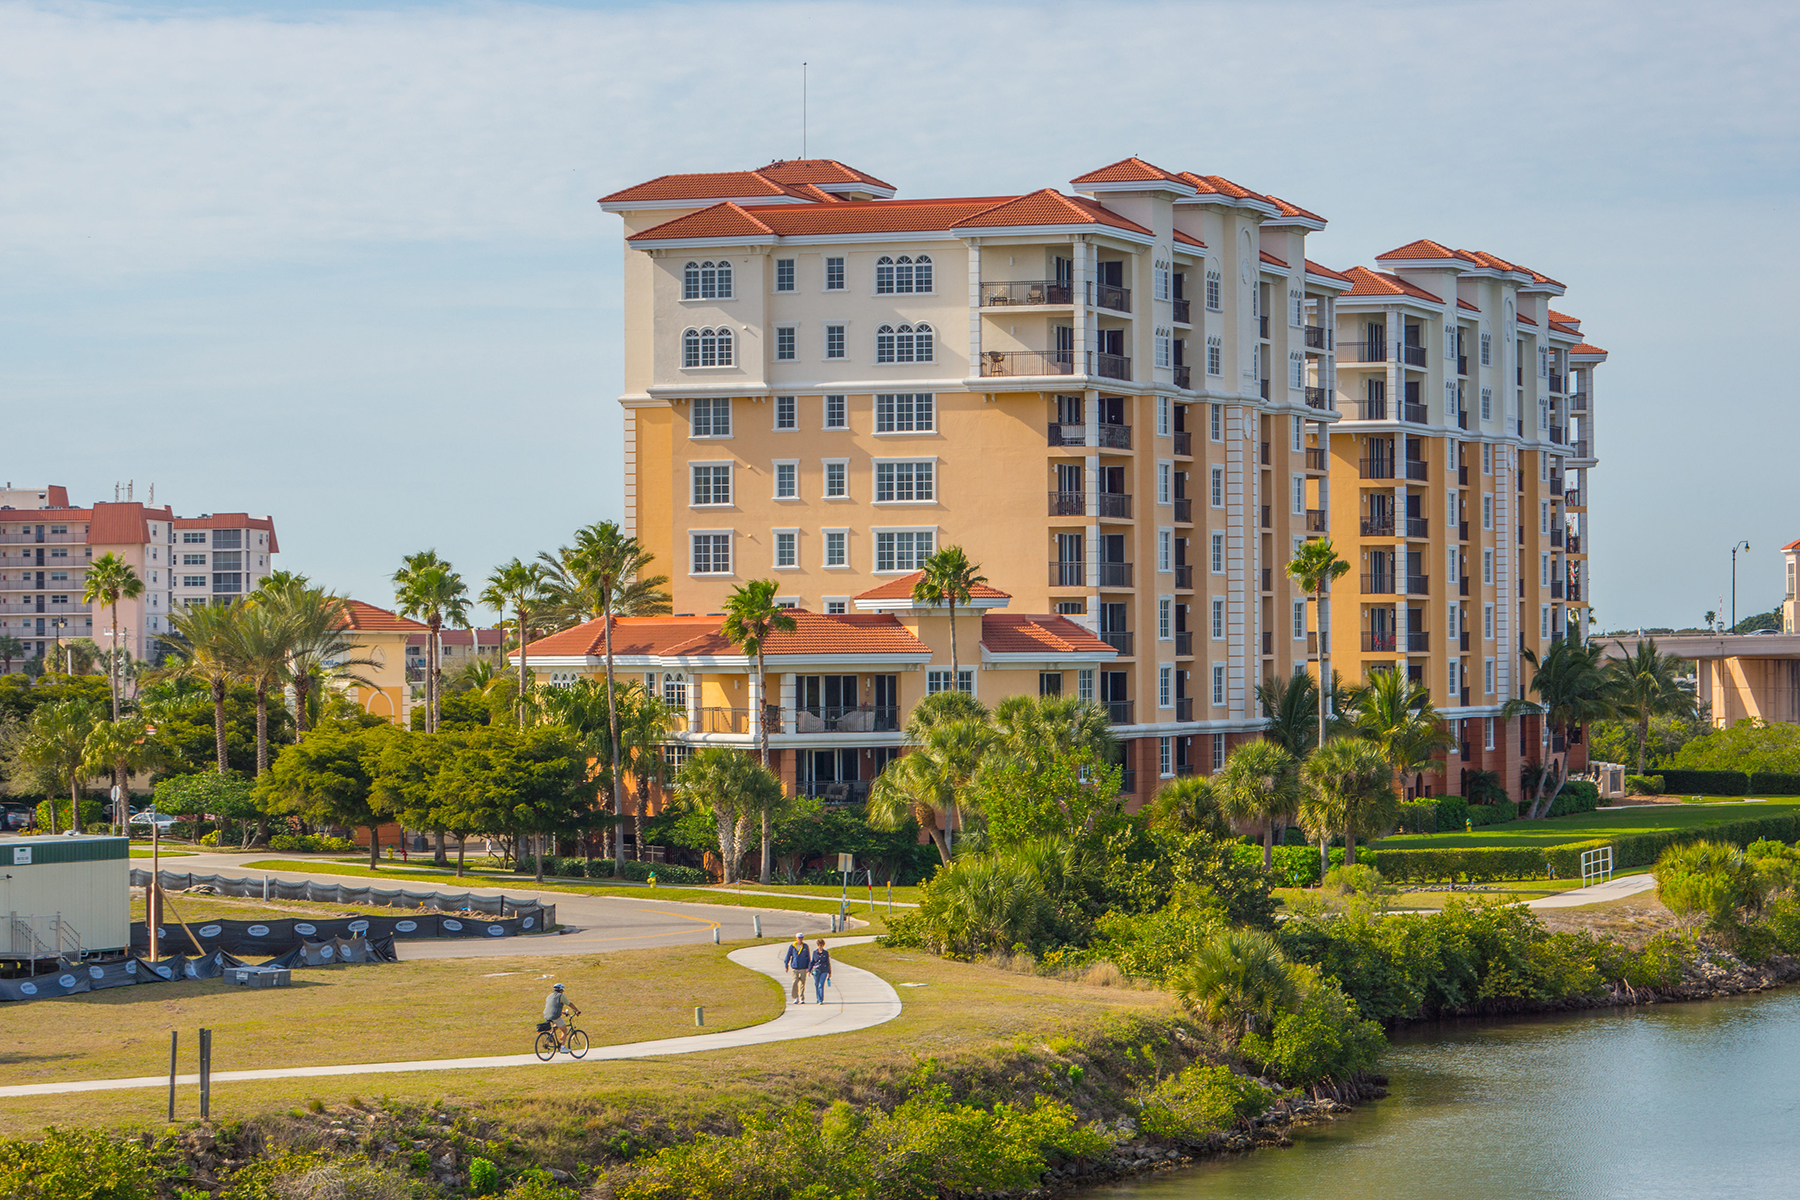 Condominium for Sale at THE WATERFRONT ON VENICE ISLAND 167 Tampa Ave E 712 Venice, Florida, 34285 United States